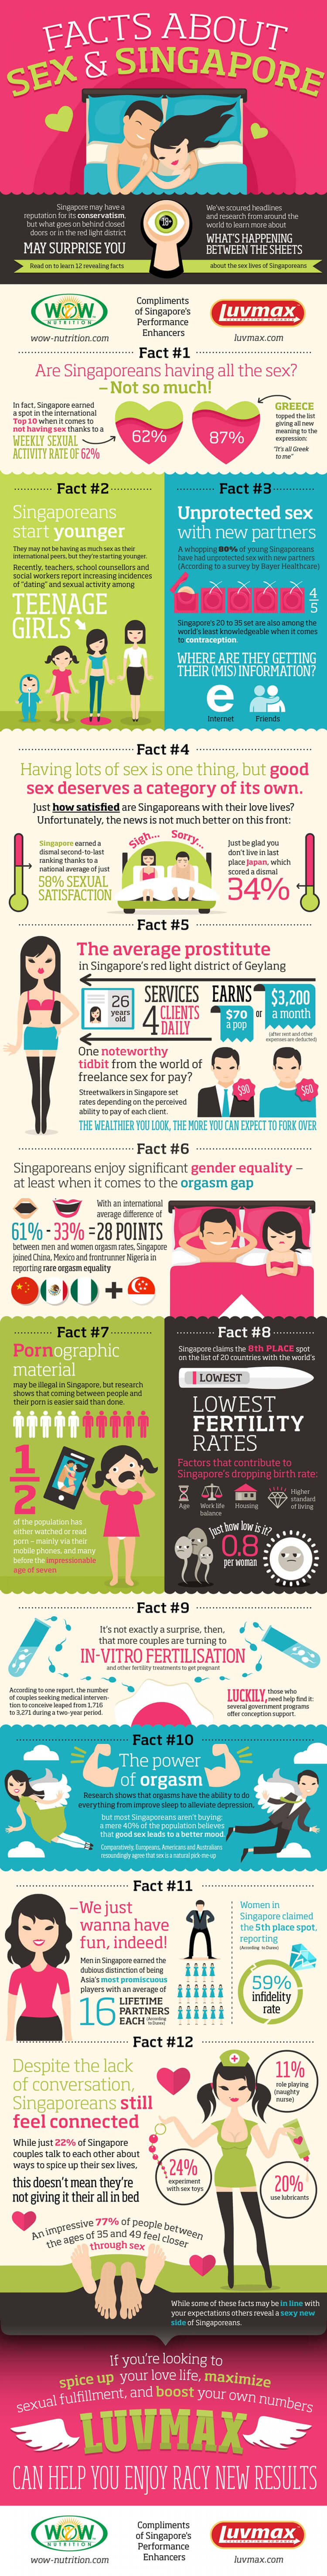 facts-about-sex-singapore-infographic